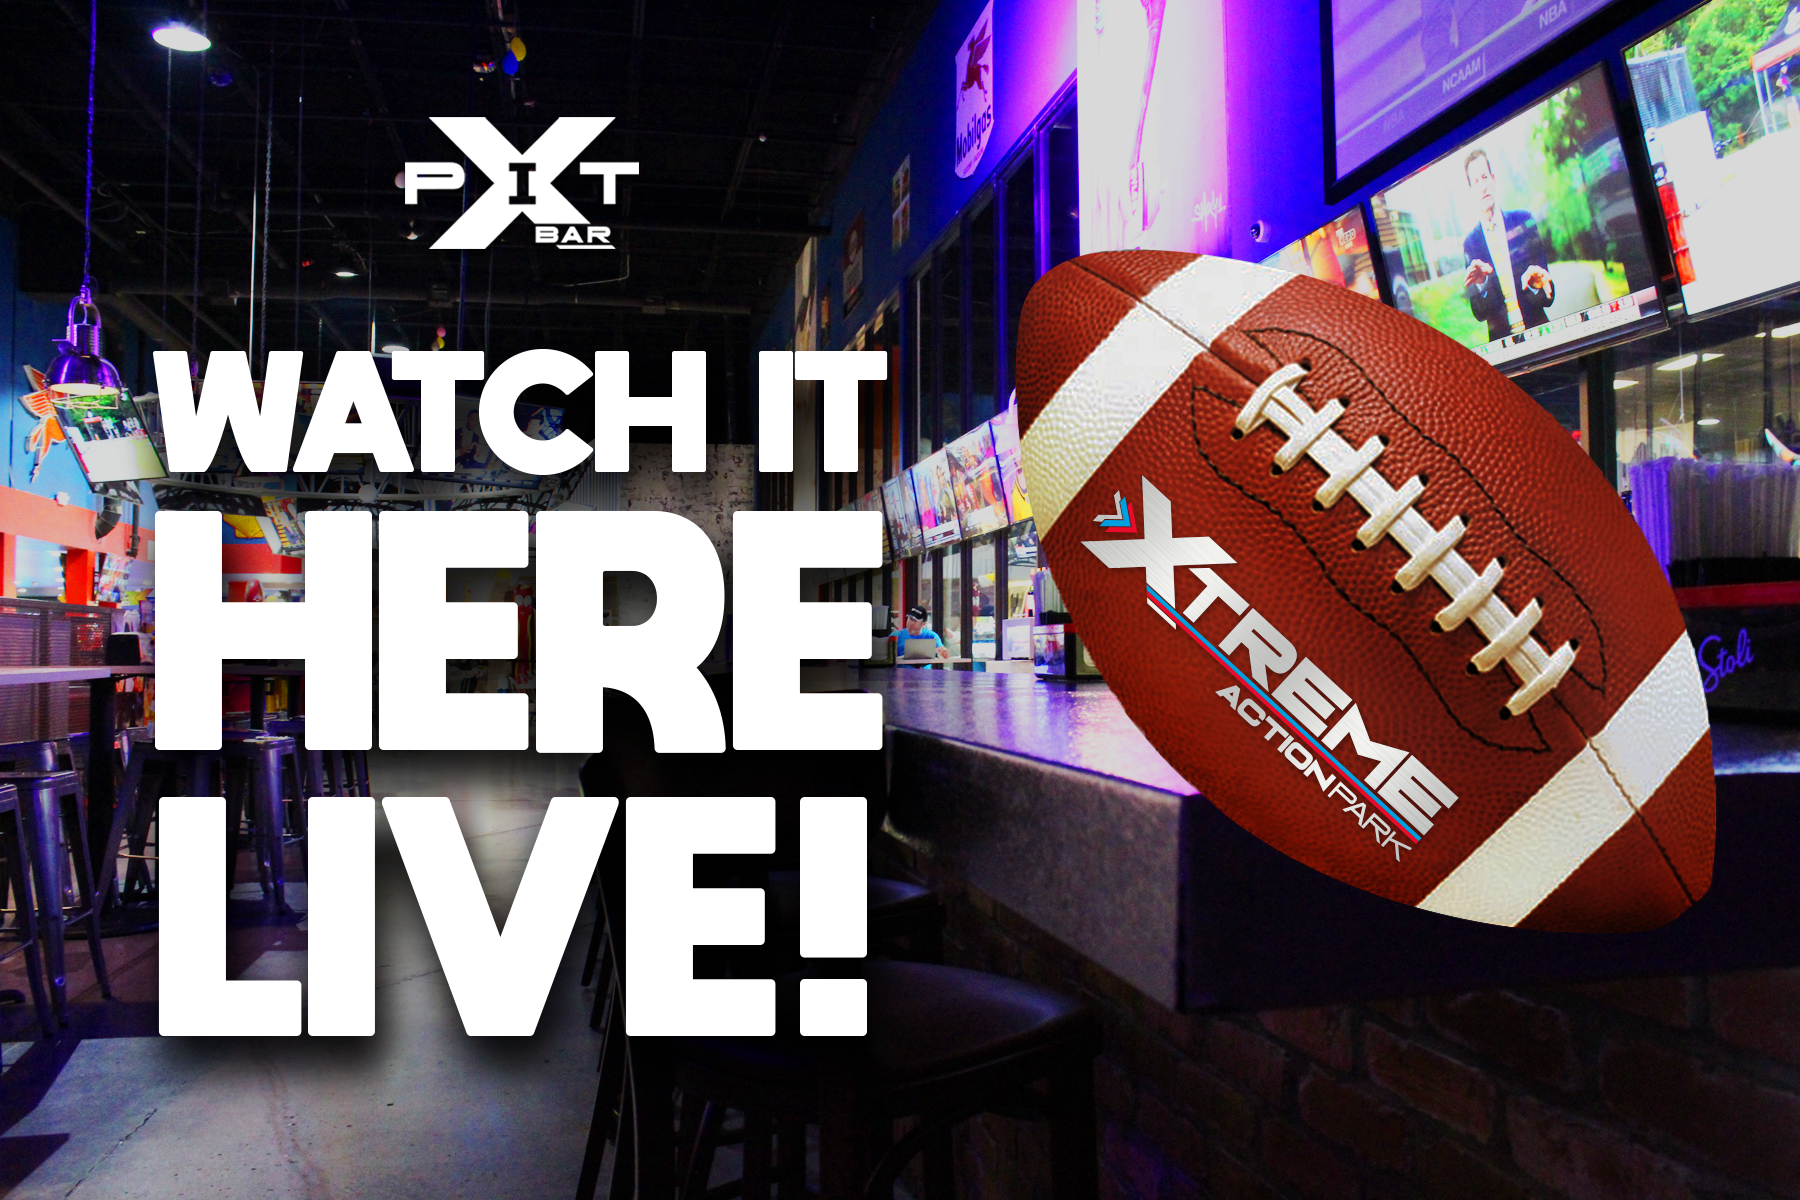 Watch Live Football Games at The Pit Bar